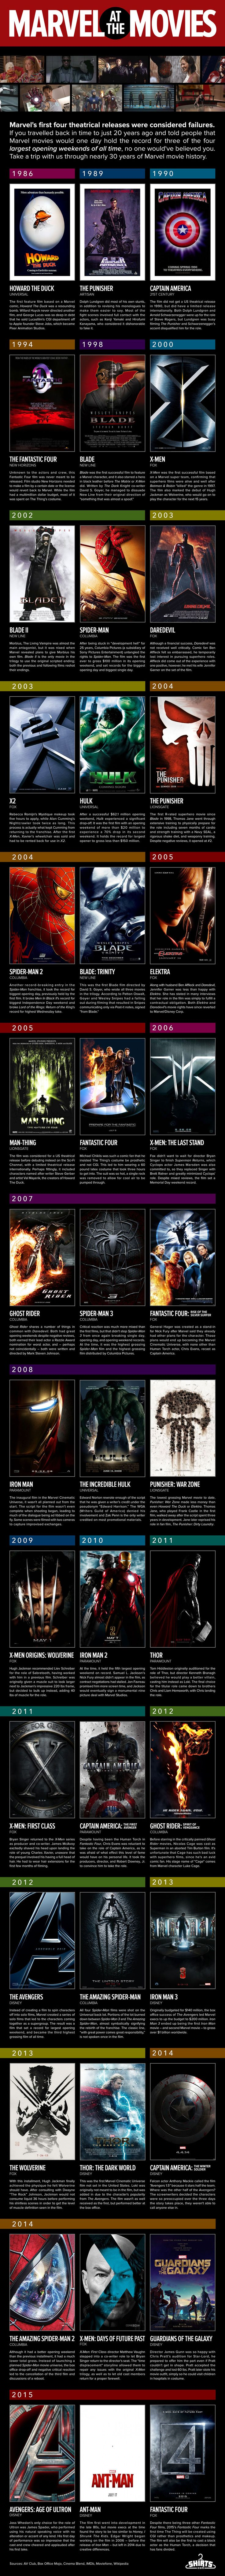 Marvel at the Movies [Timeline] - Borrowing Tape